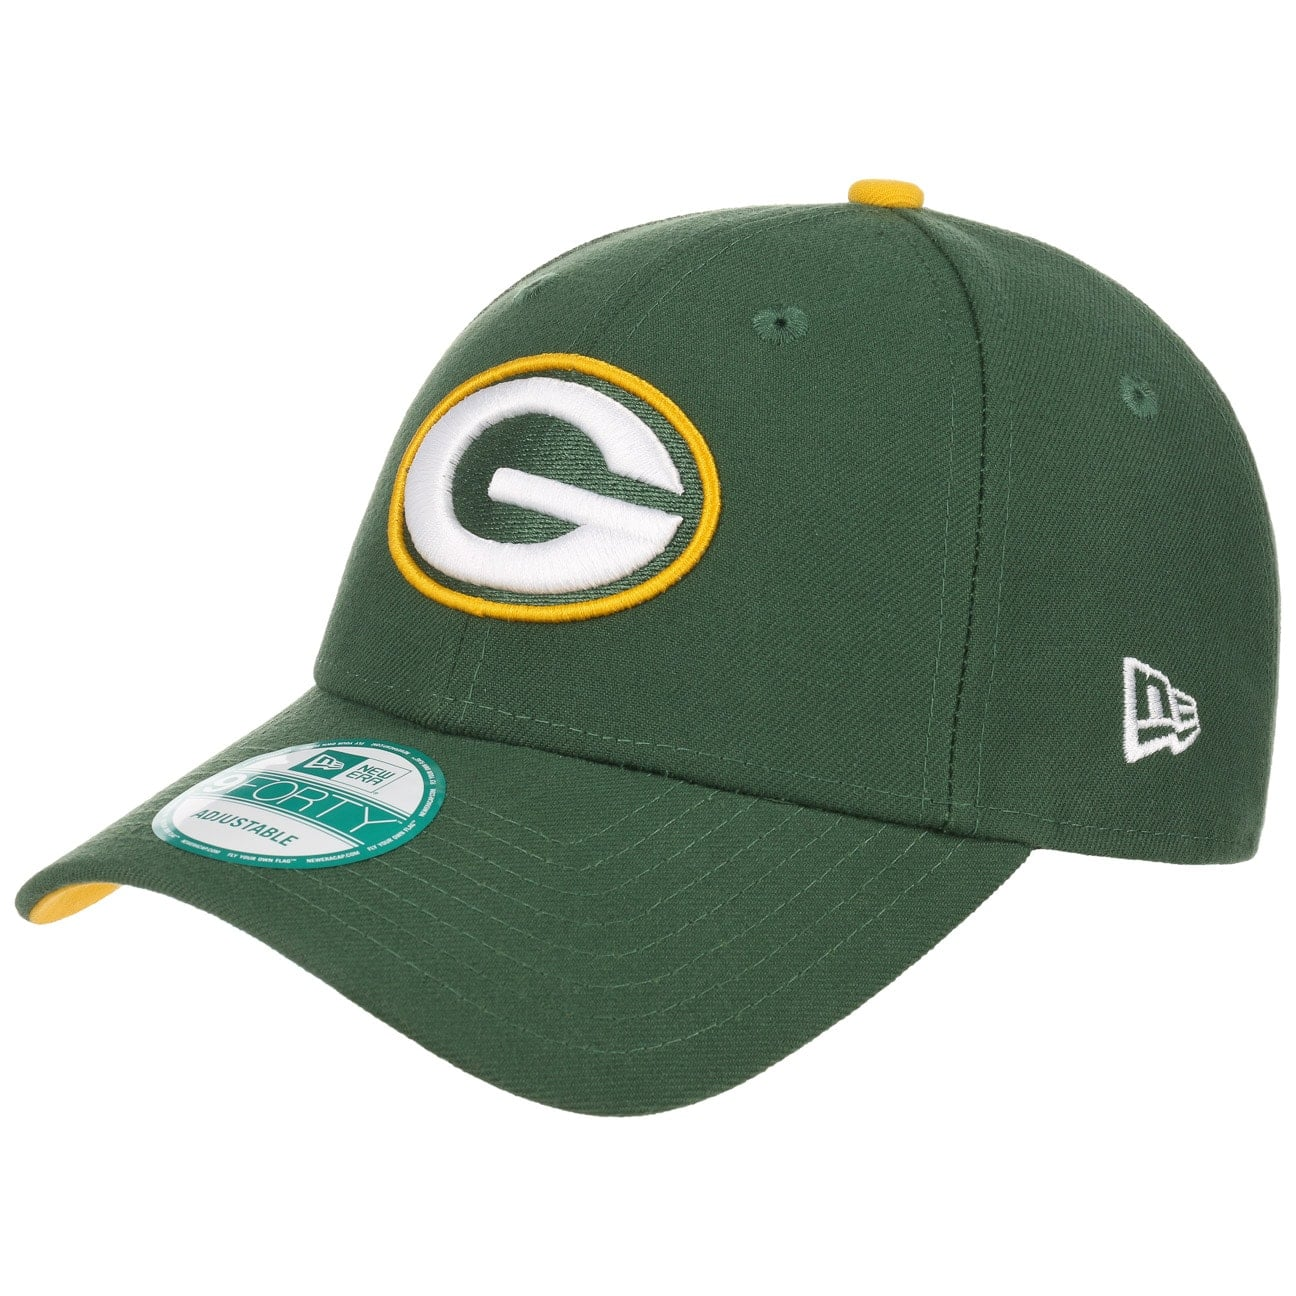 d29e62cdf ... 9Forty Green Bay Packers Cap by New Era - green 5